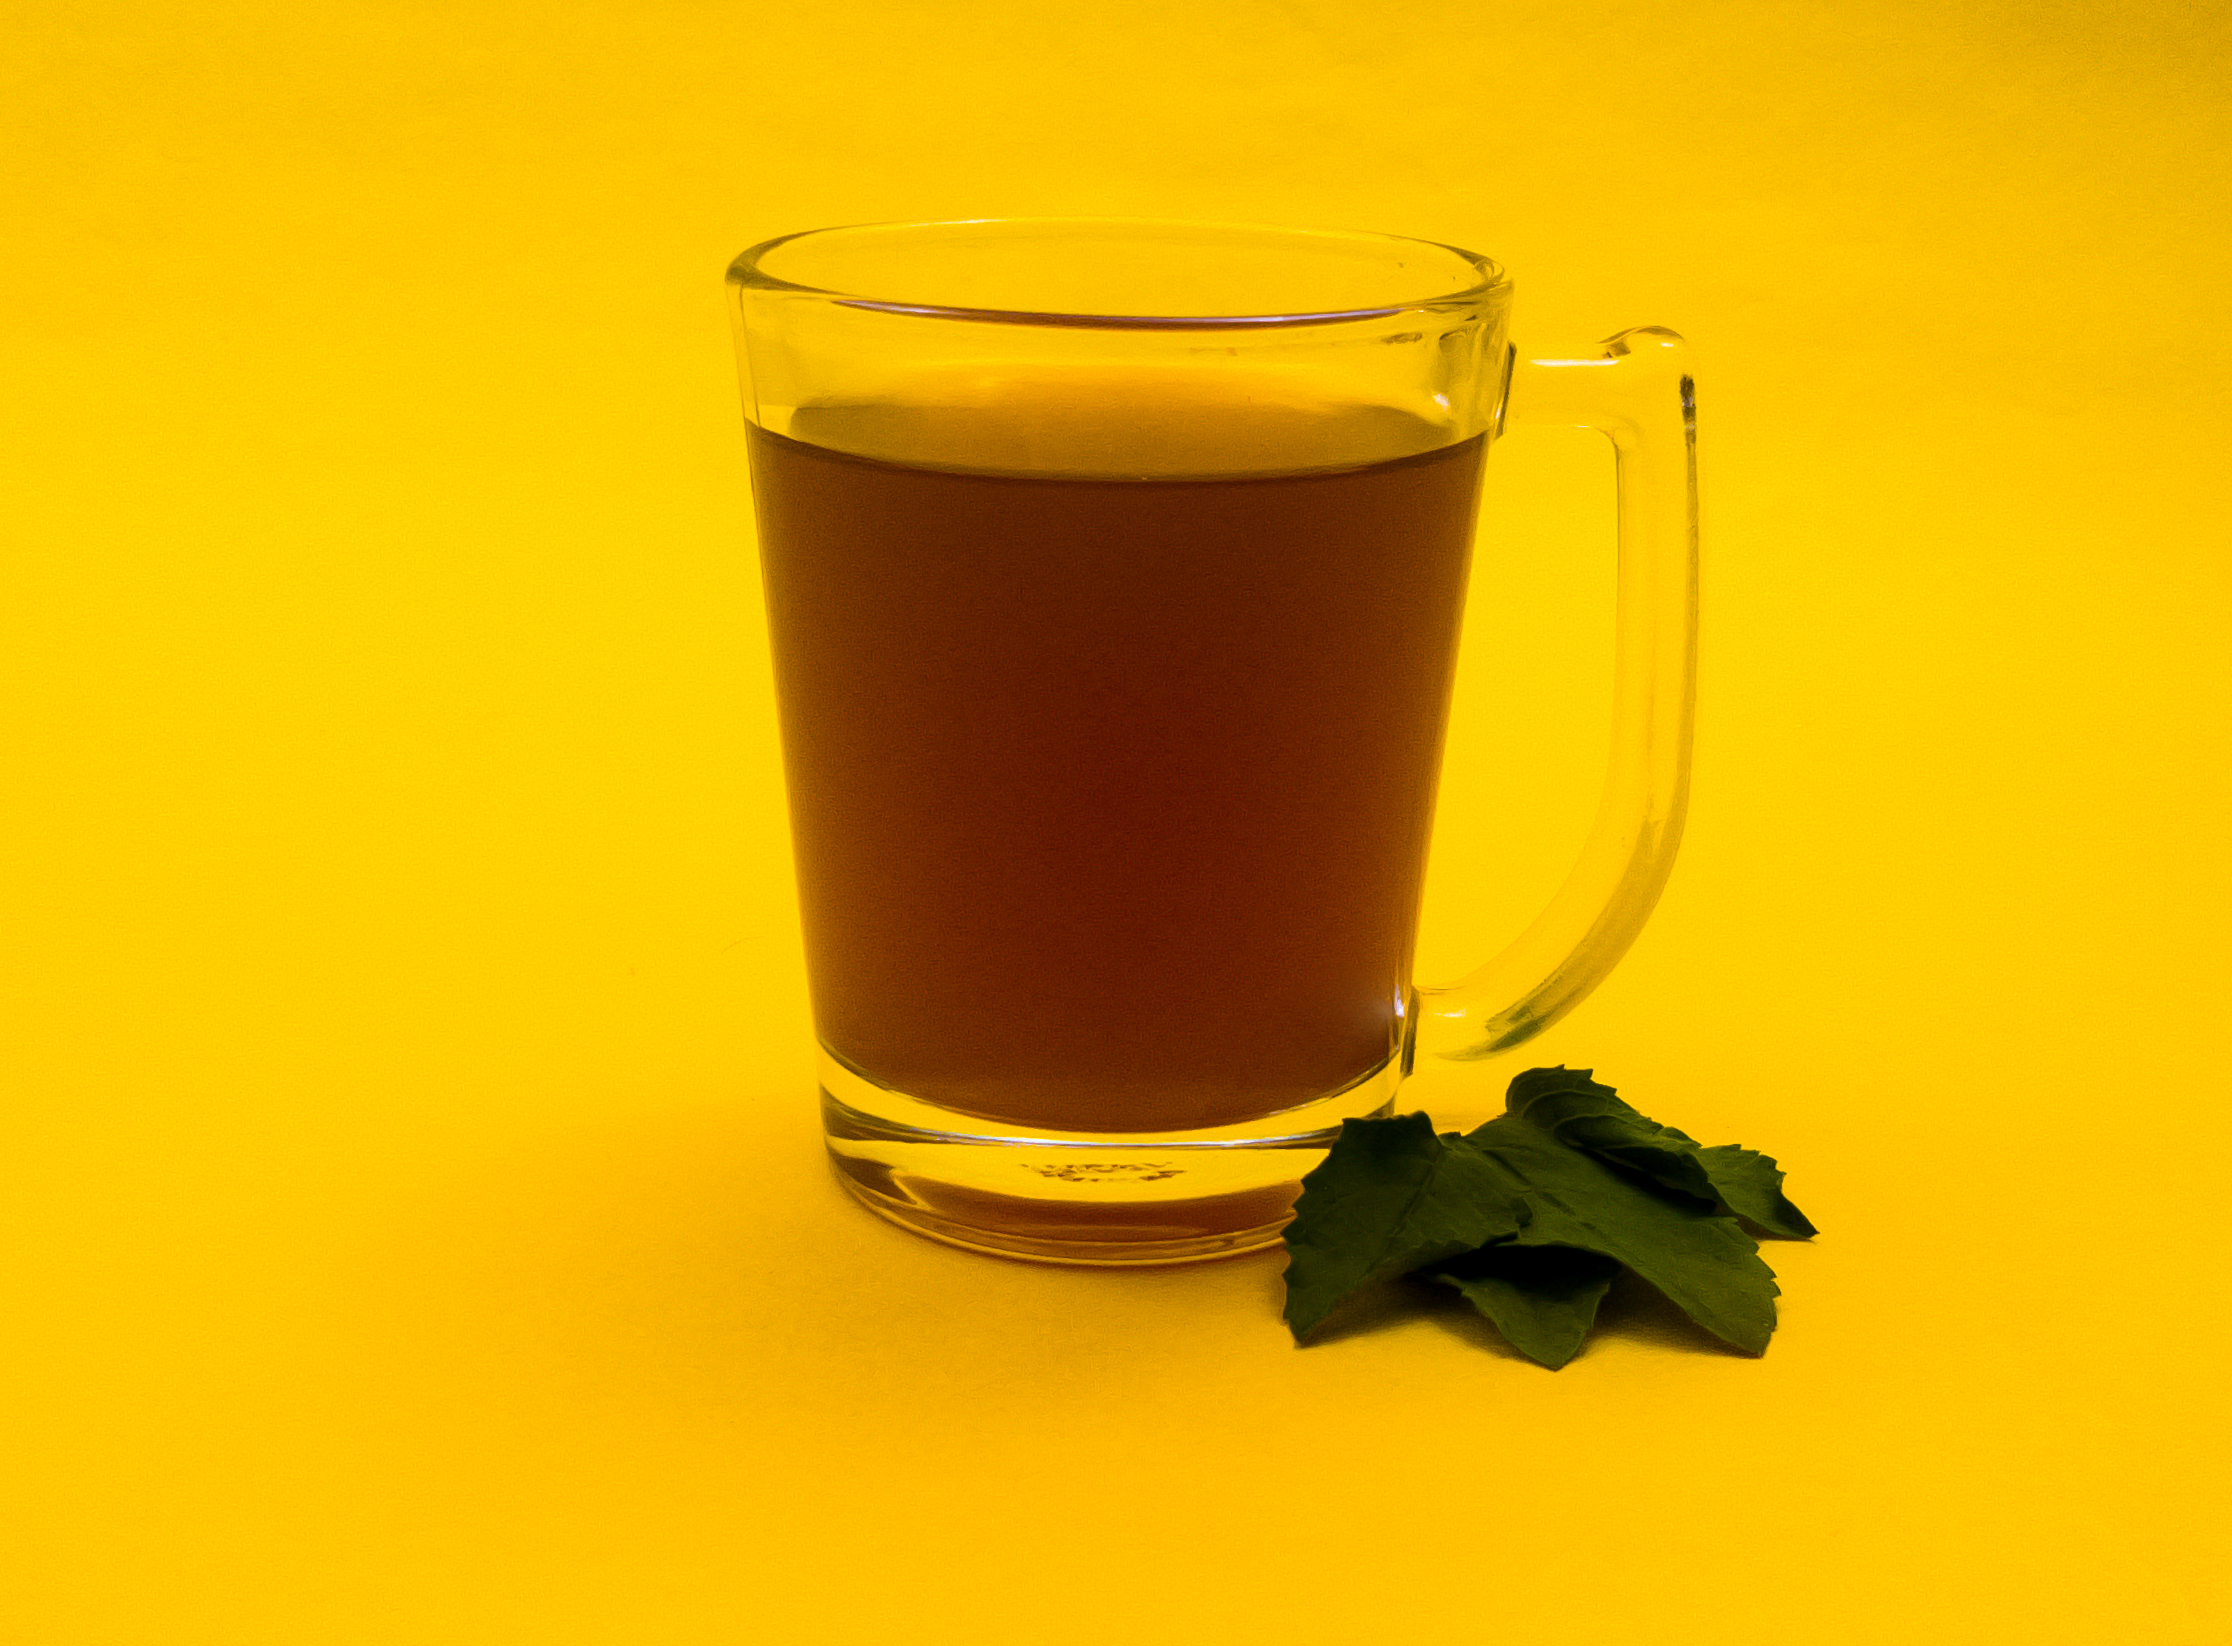 A glass of healthy green tea